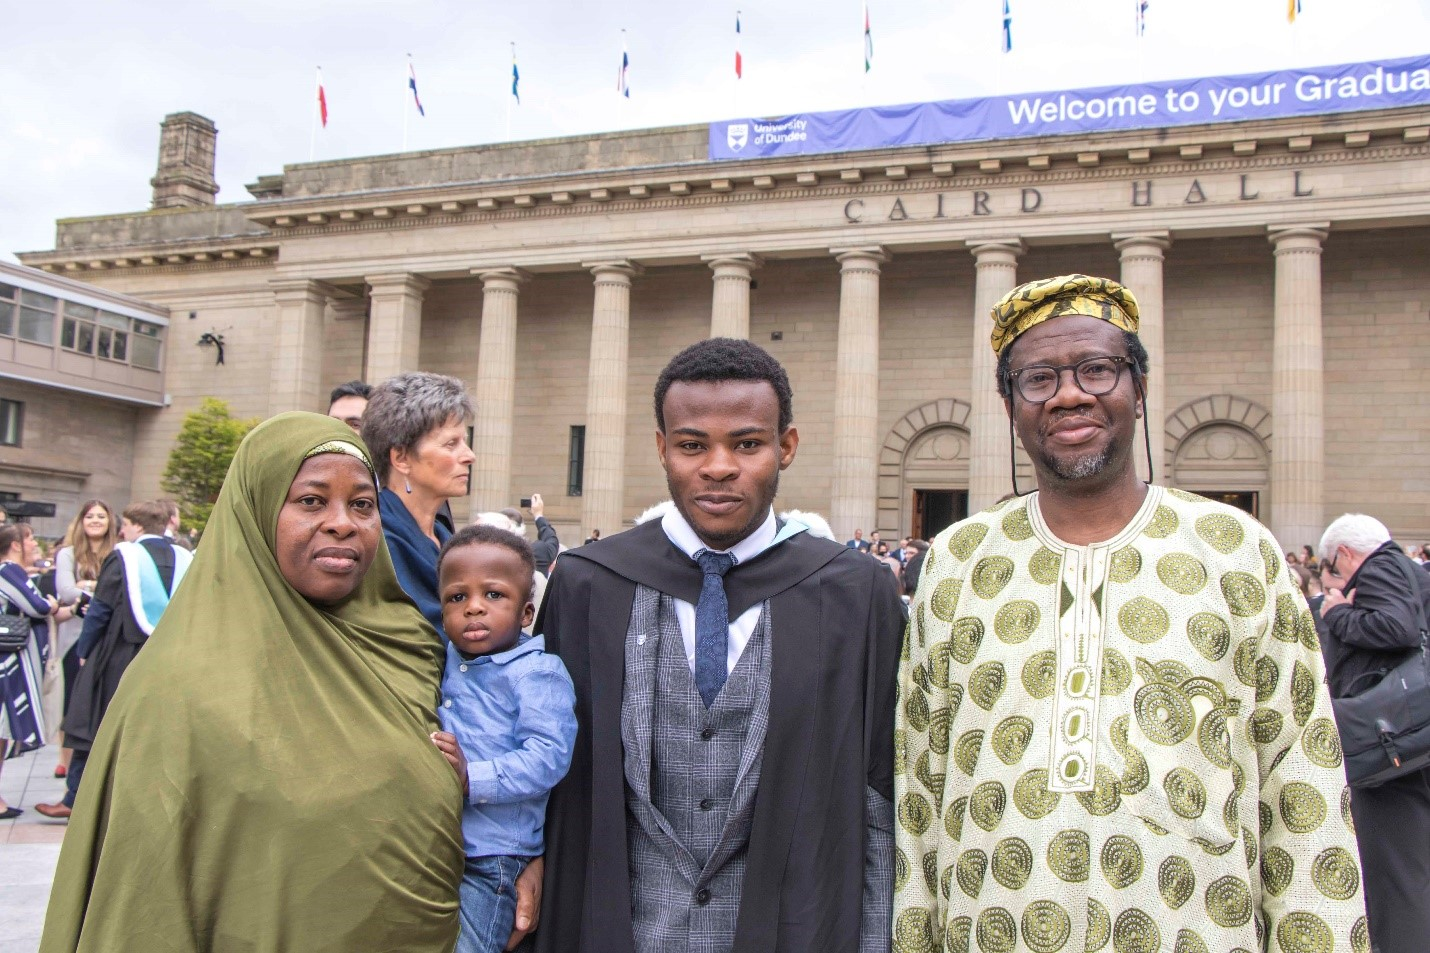 Family affair as father, son graduate from University of Dundee